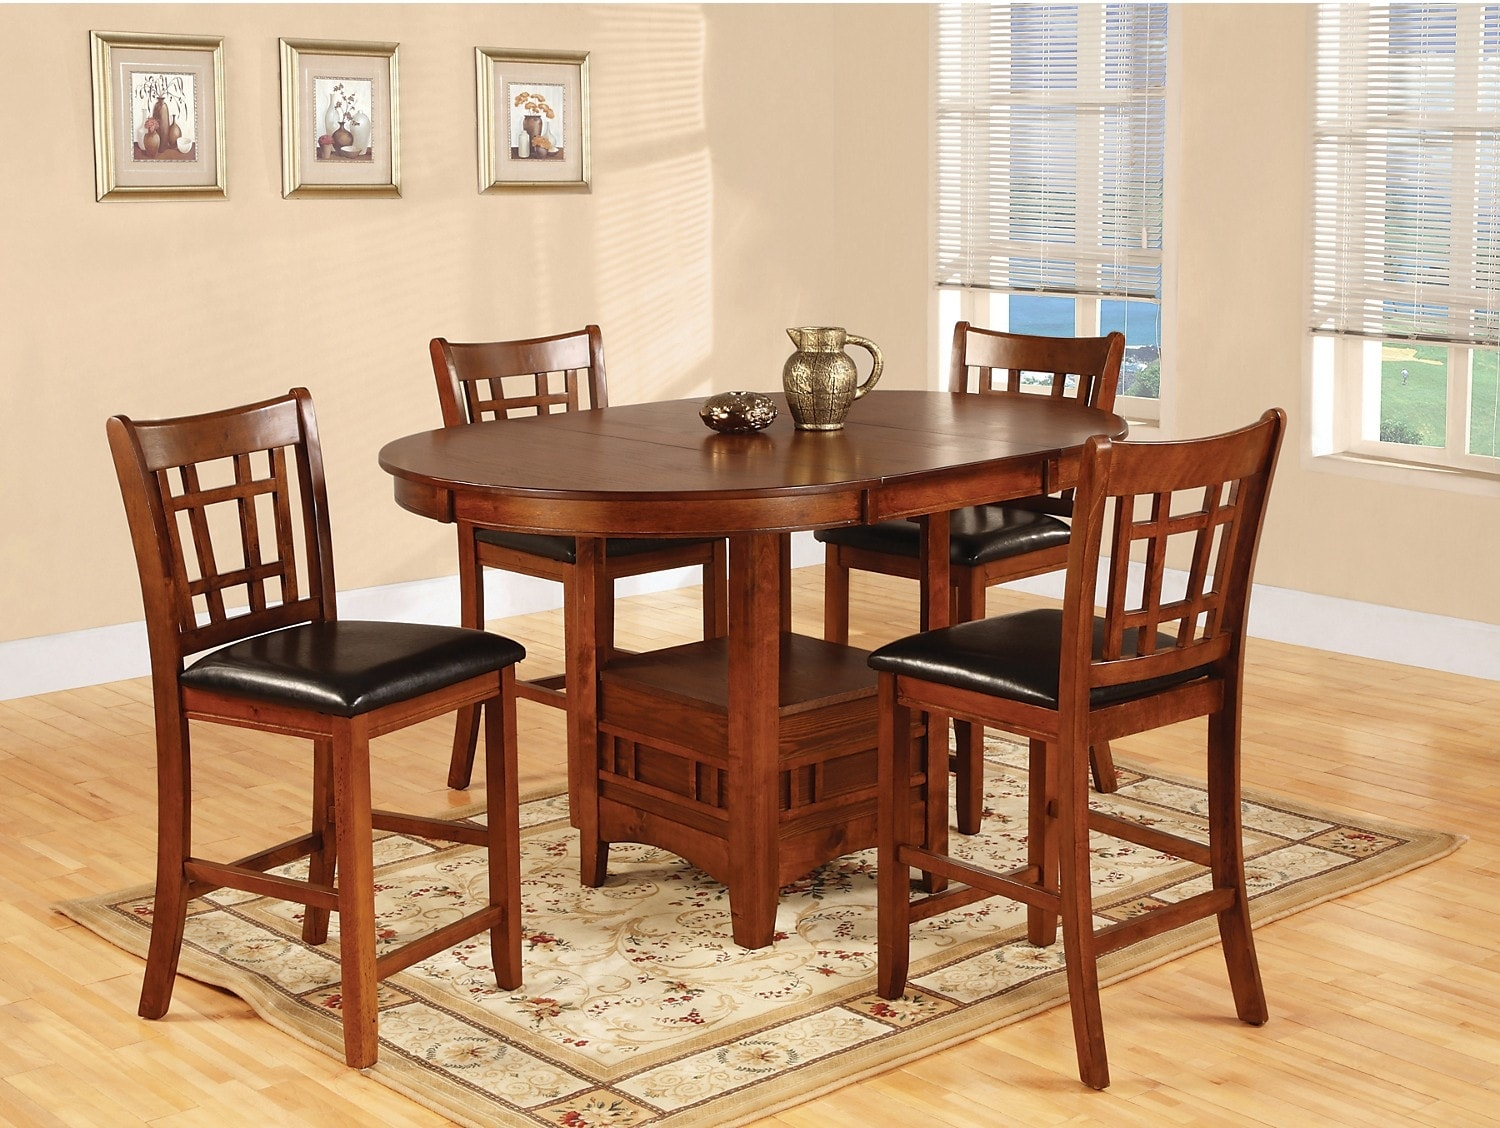 Dalton 5 piece oak counter height dining package the brick - The brick dining room sets ...